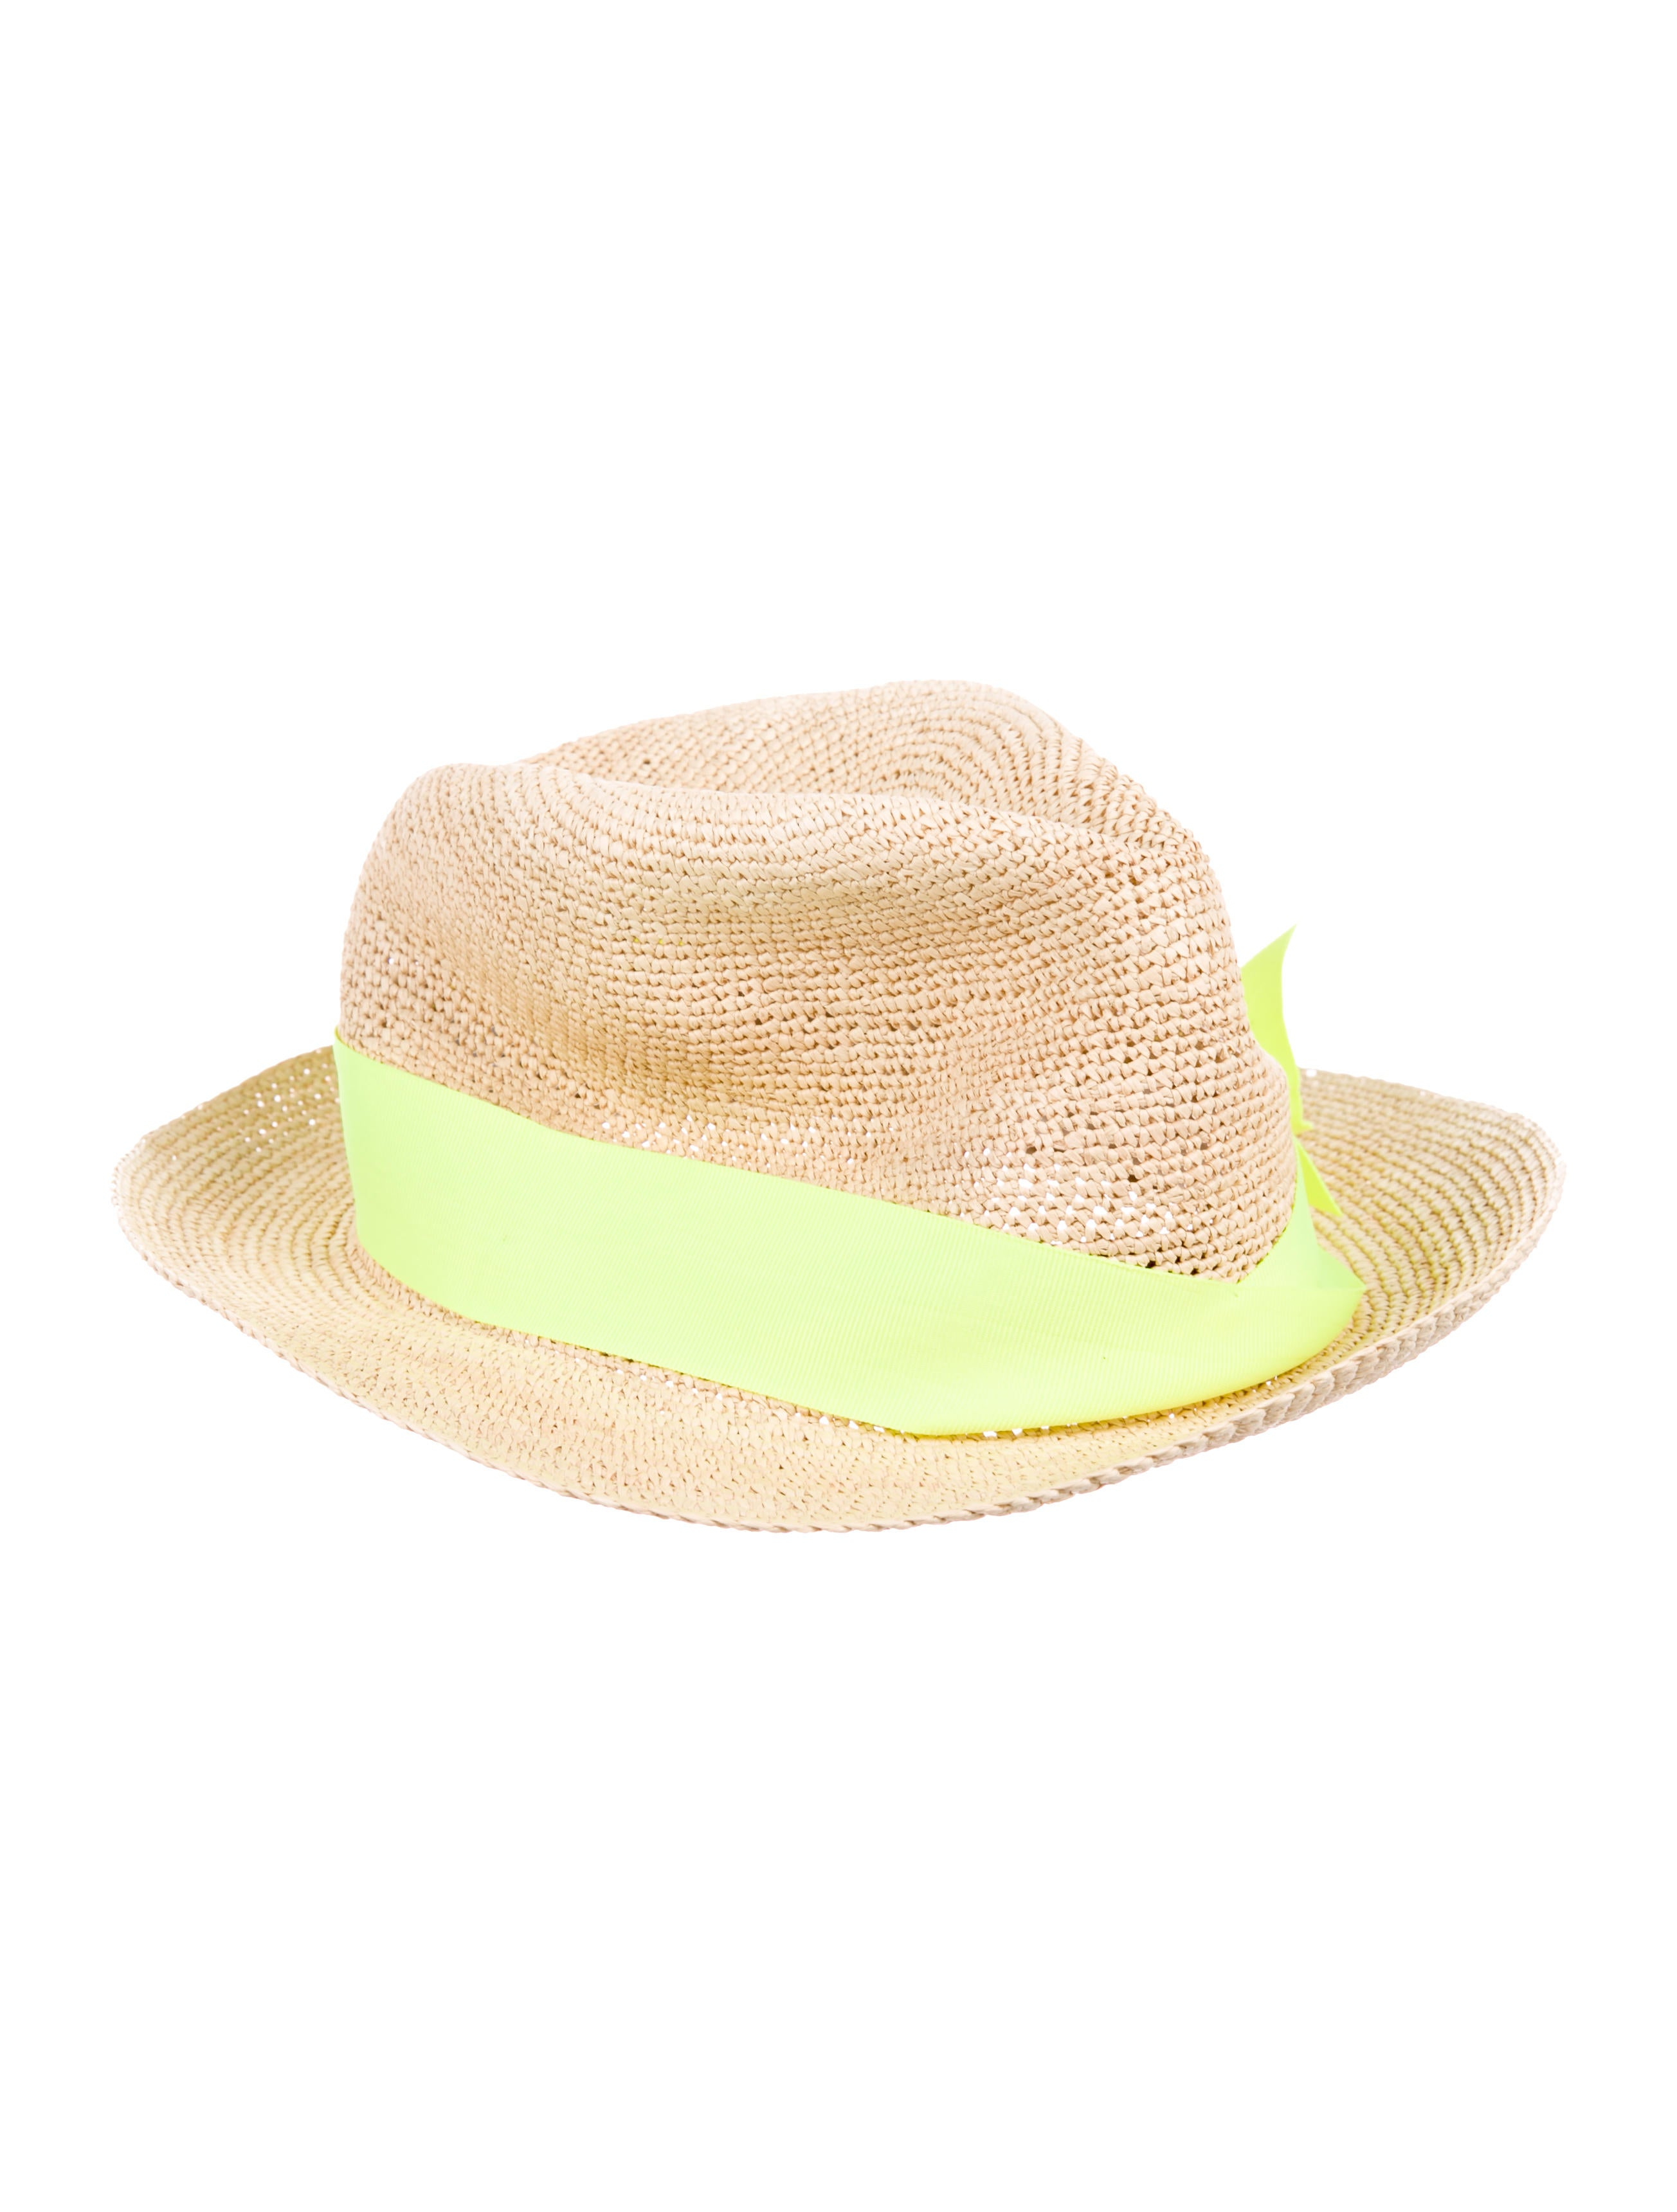 Sensi Studio Bow-Accented Straw Hat - Accessories - WSENS20124  935d13aed6d0